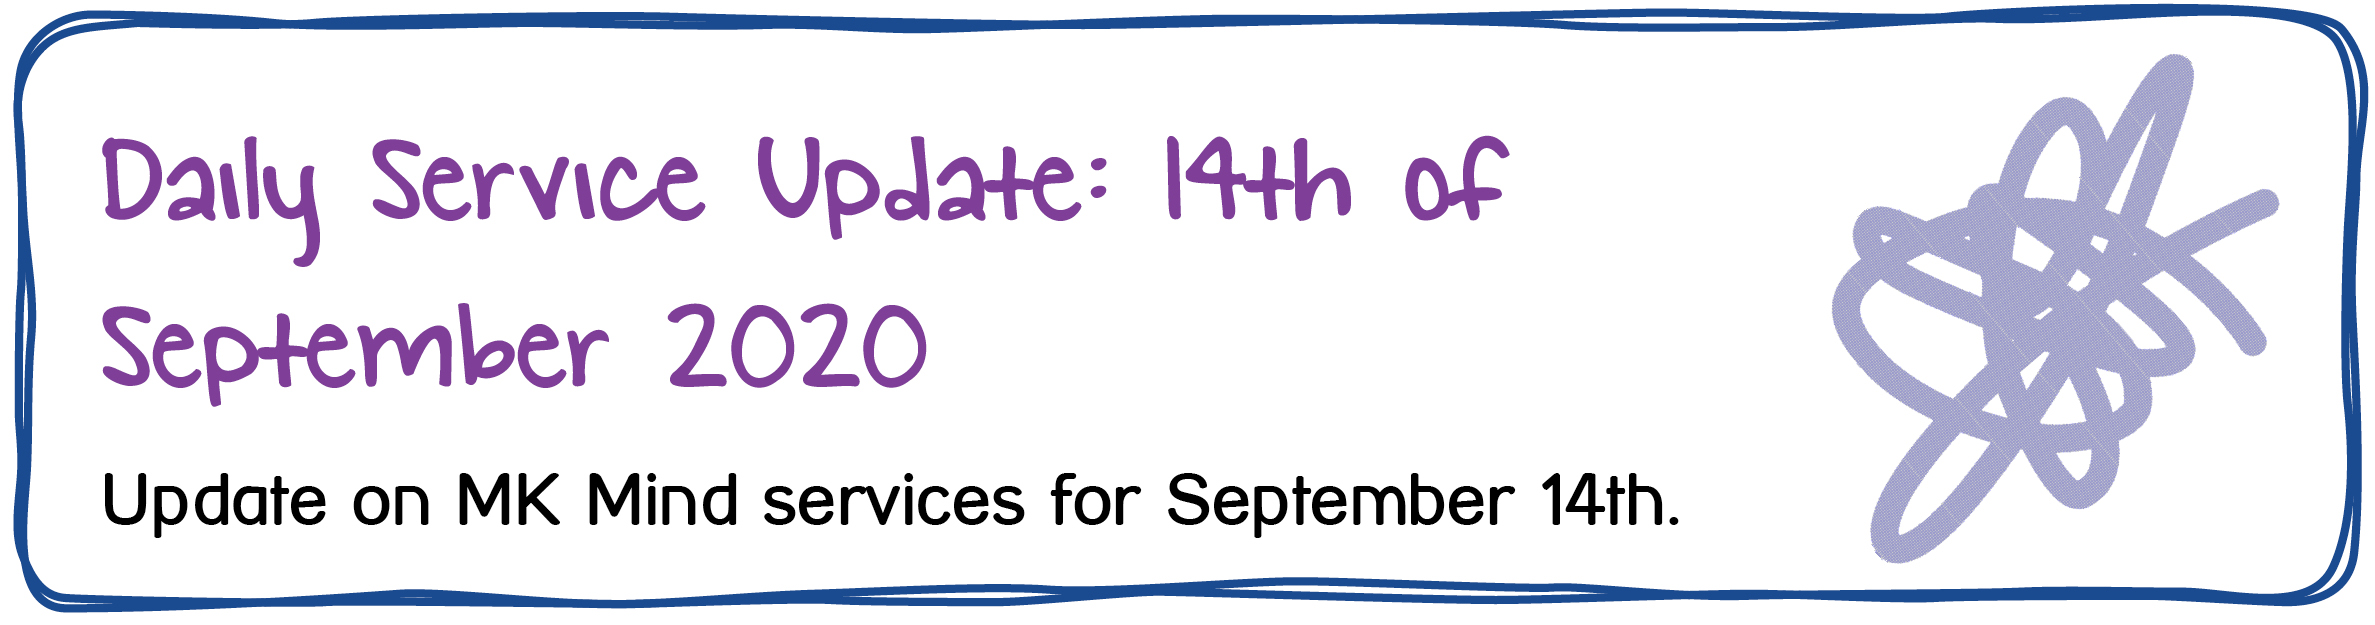 Daily Service Update: 14th of September 2020. Update on MK Mind services for September 14th.